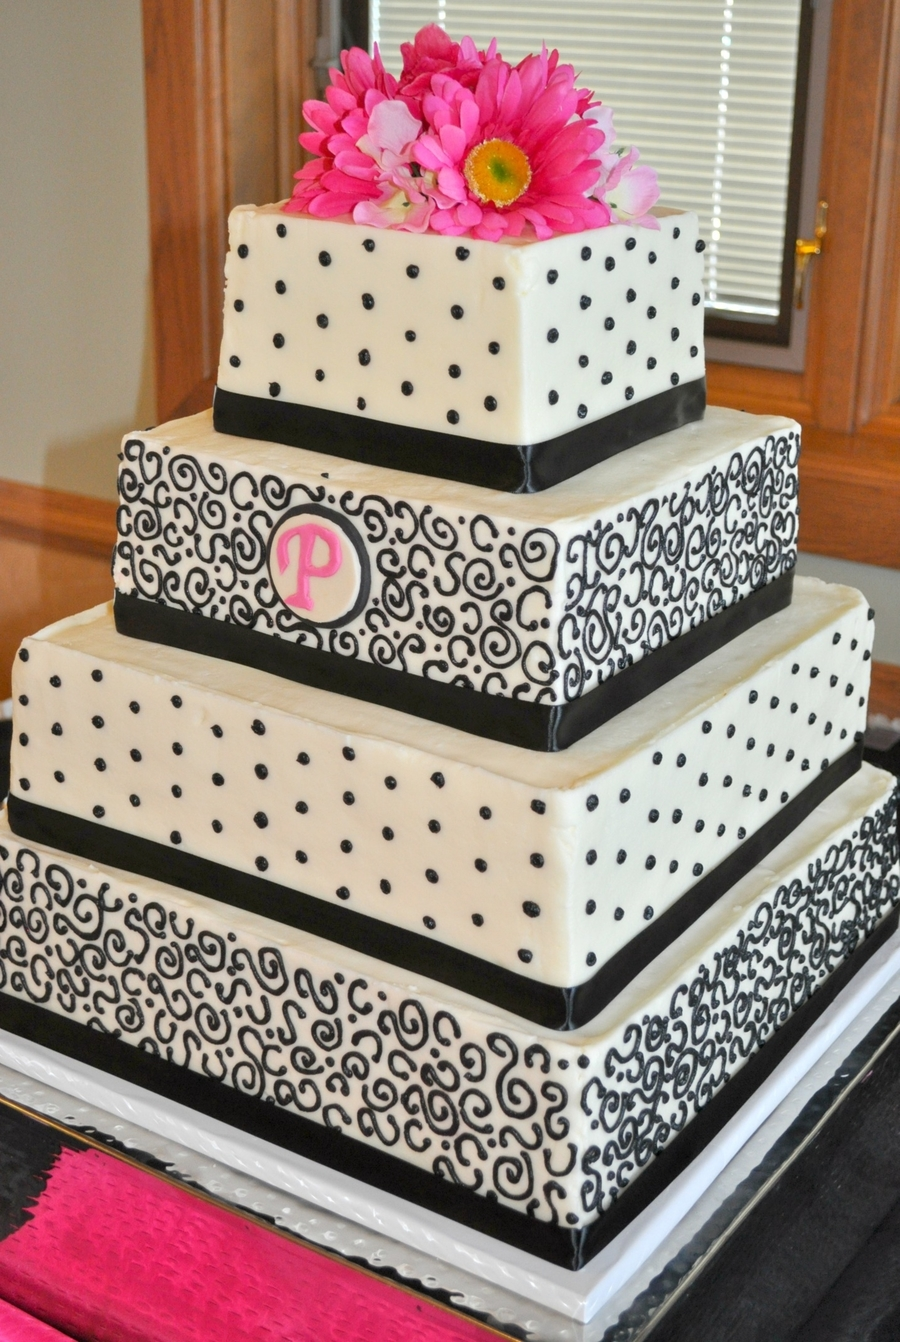 wedding cakes black white and pink black white and pink wedding cake cakecentral 23902